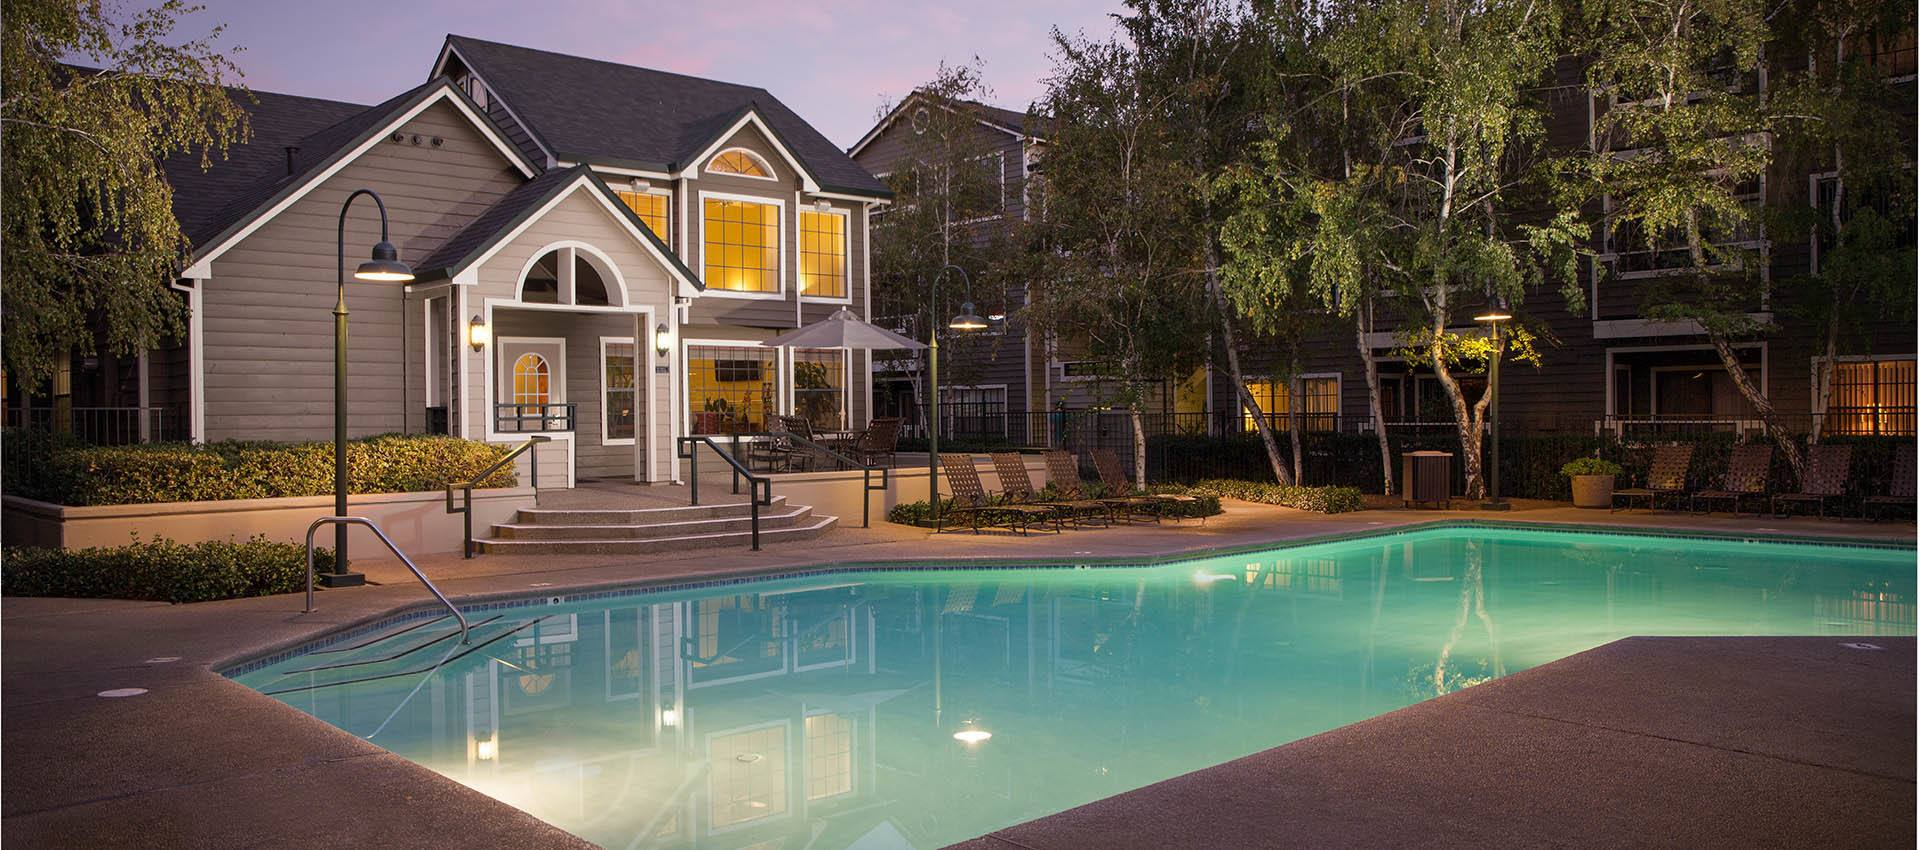 Expansive Pool Deck With Spa